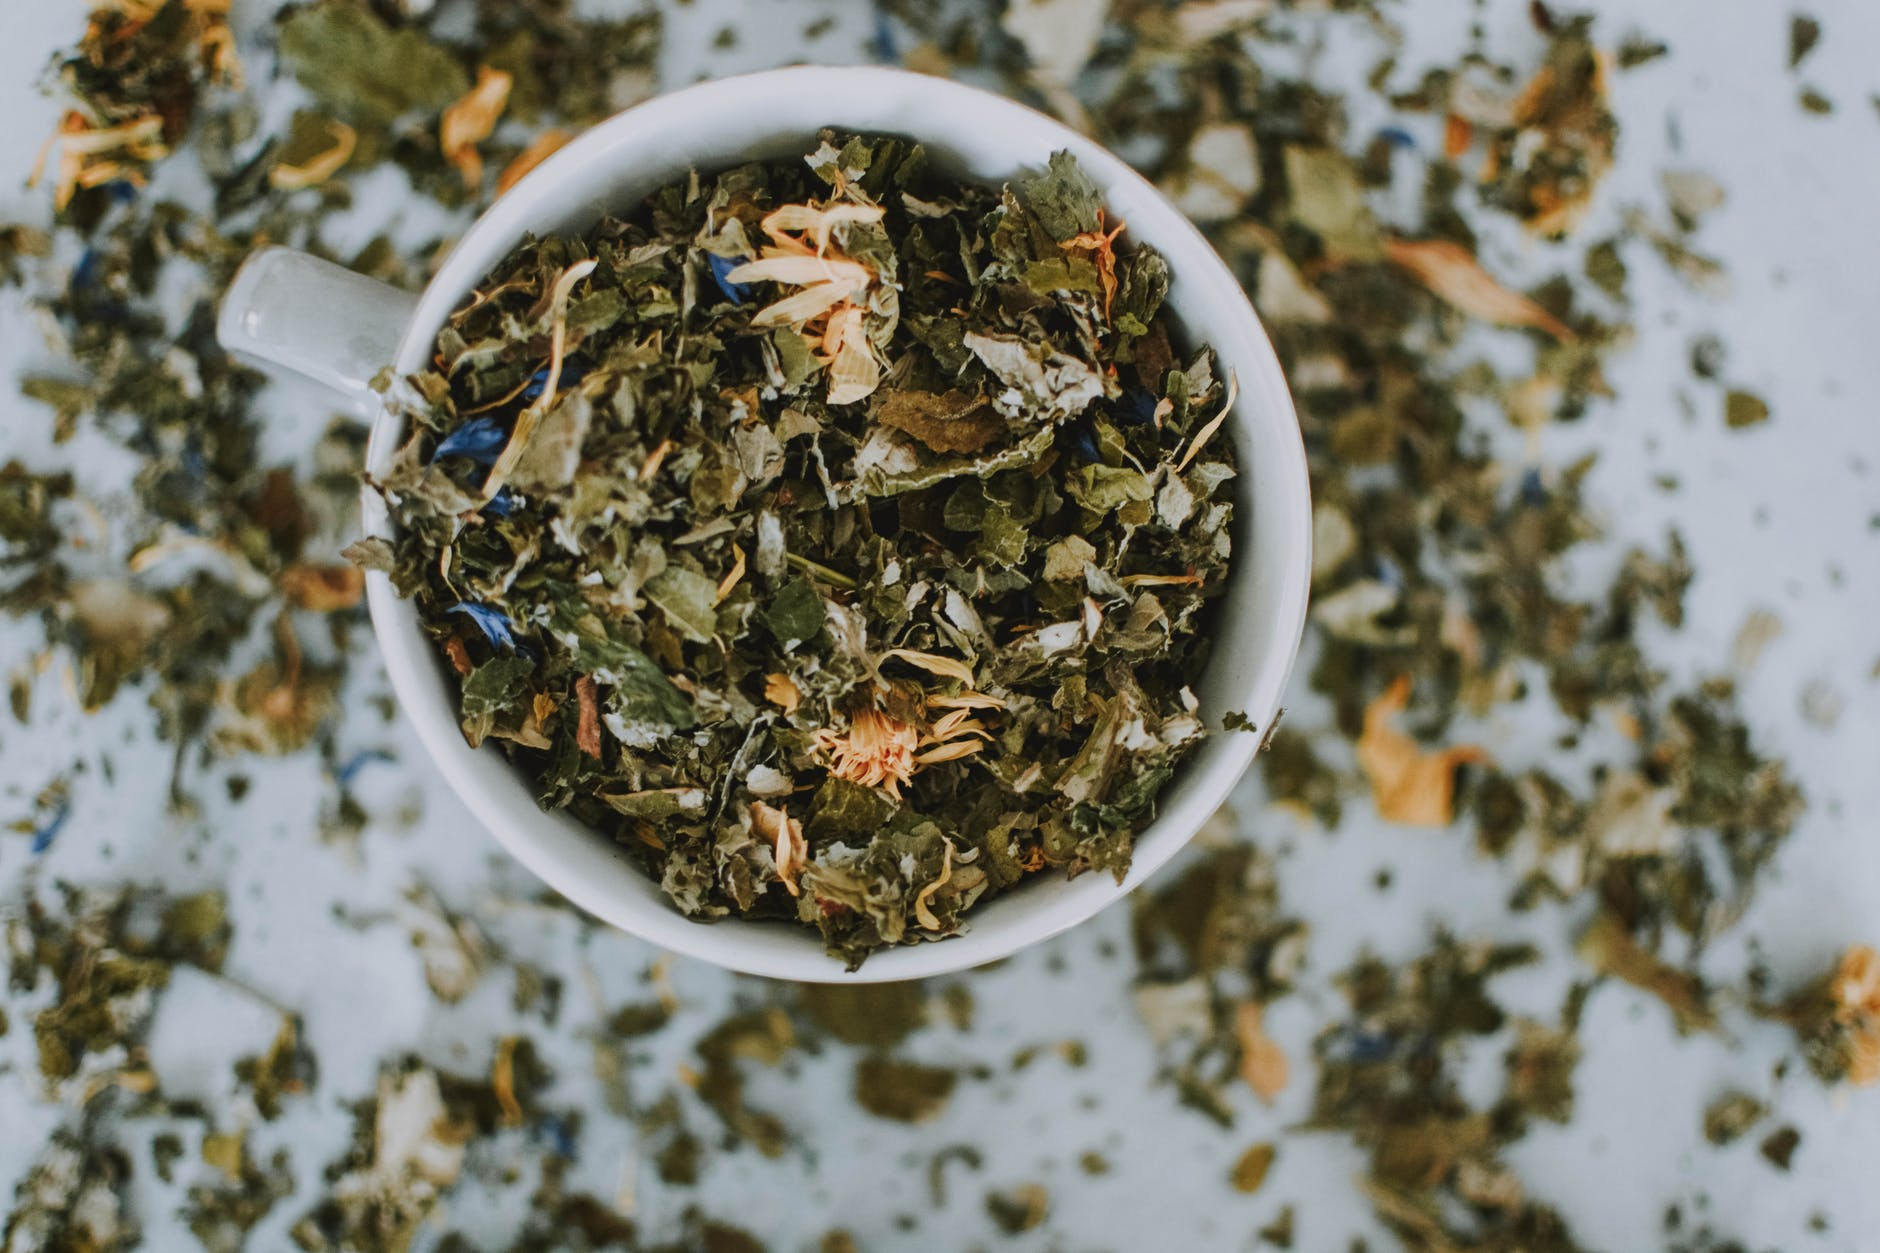 Caffeine-rich green tea | Source: Pexels